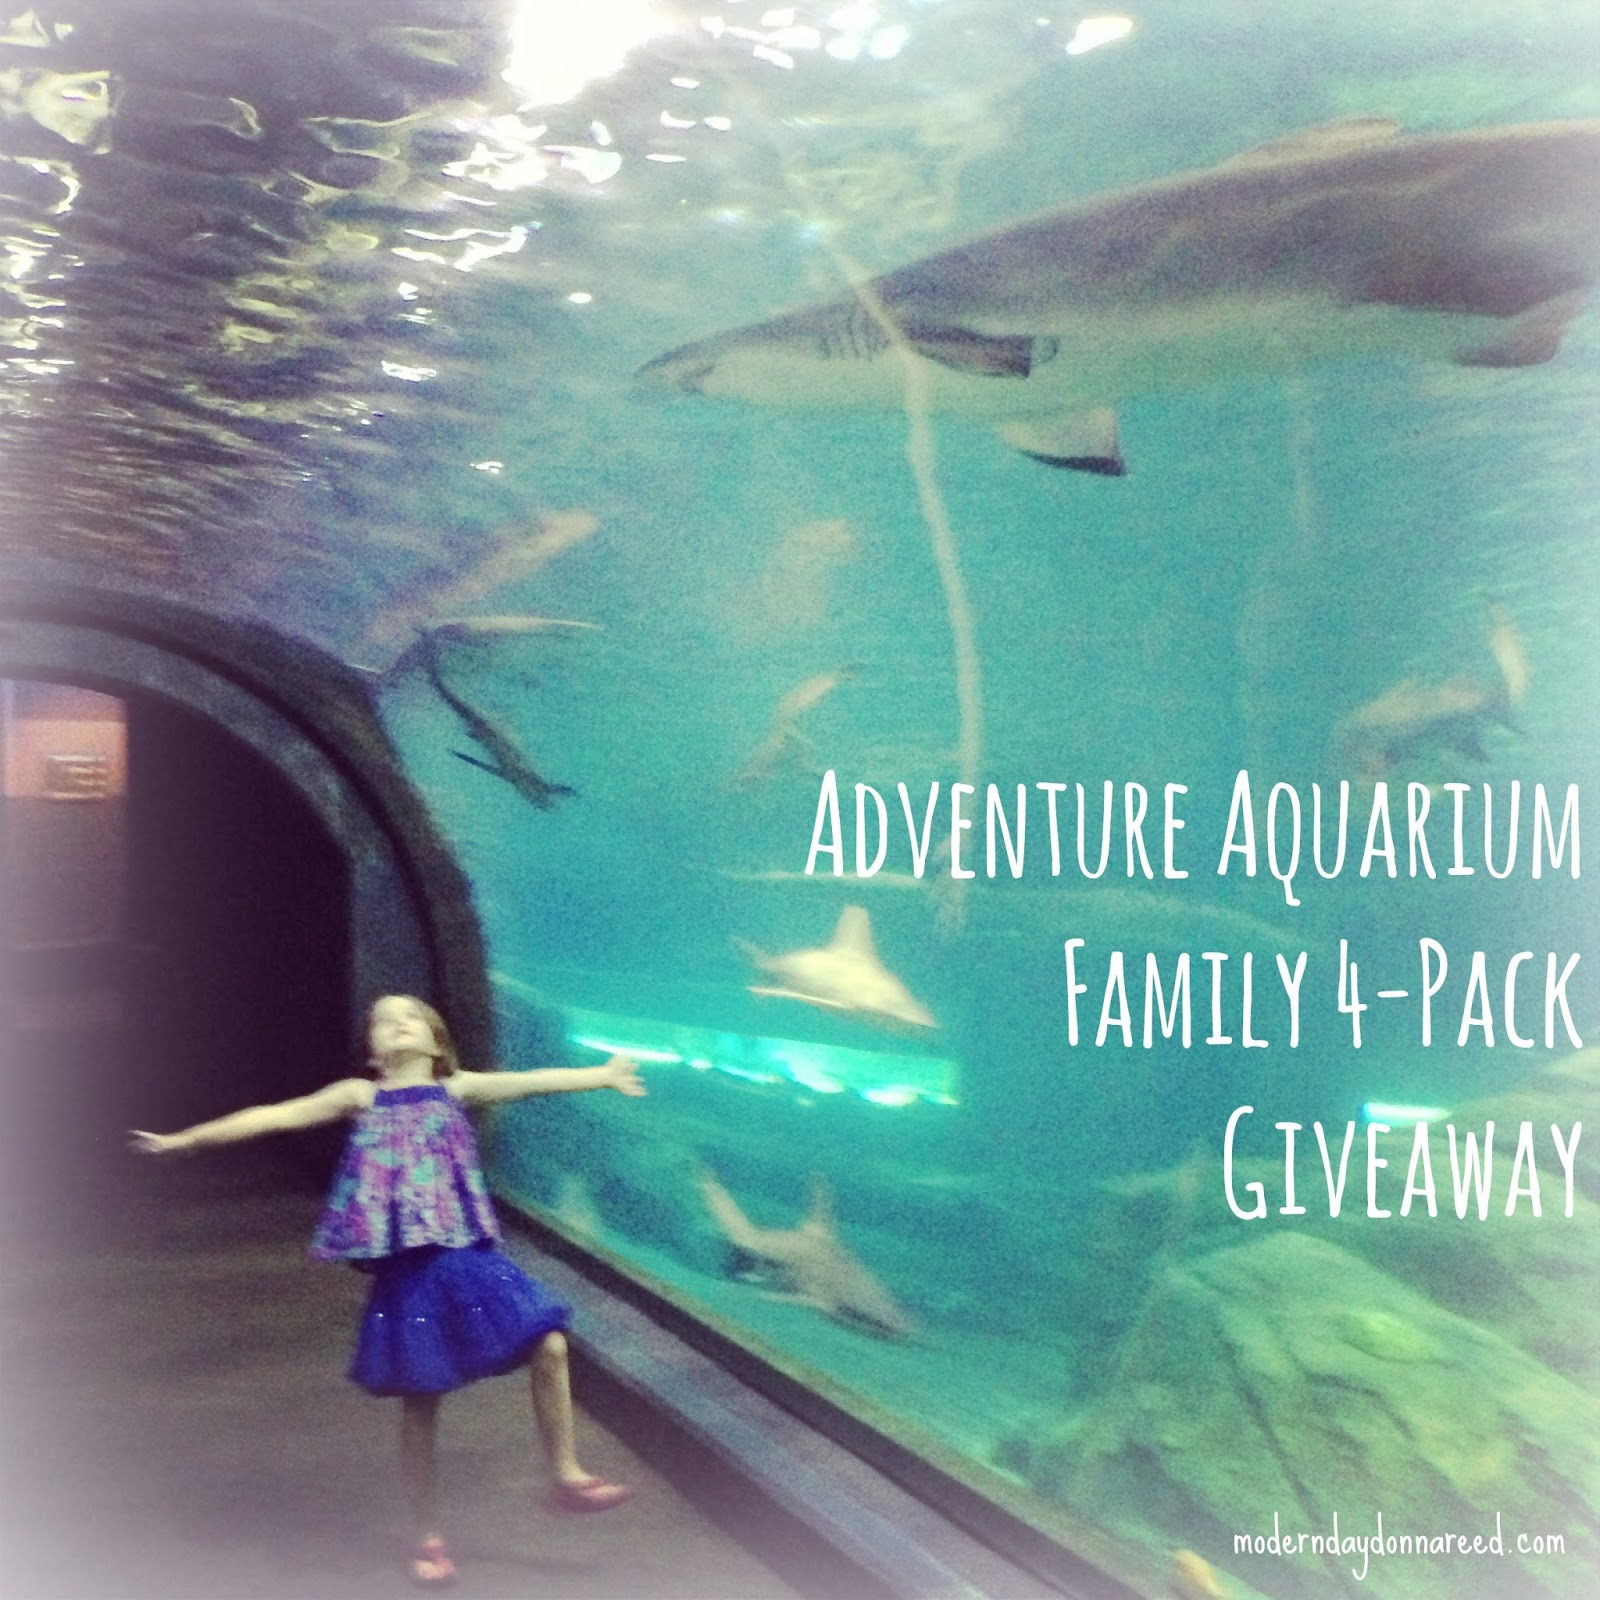 Adventure Aquarium Giveaway Family 4 Pack Of Tickets